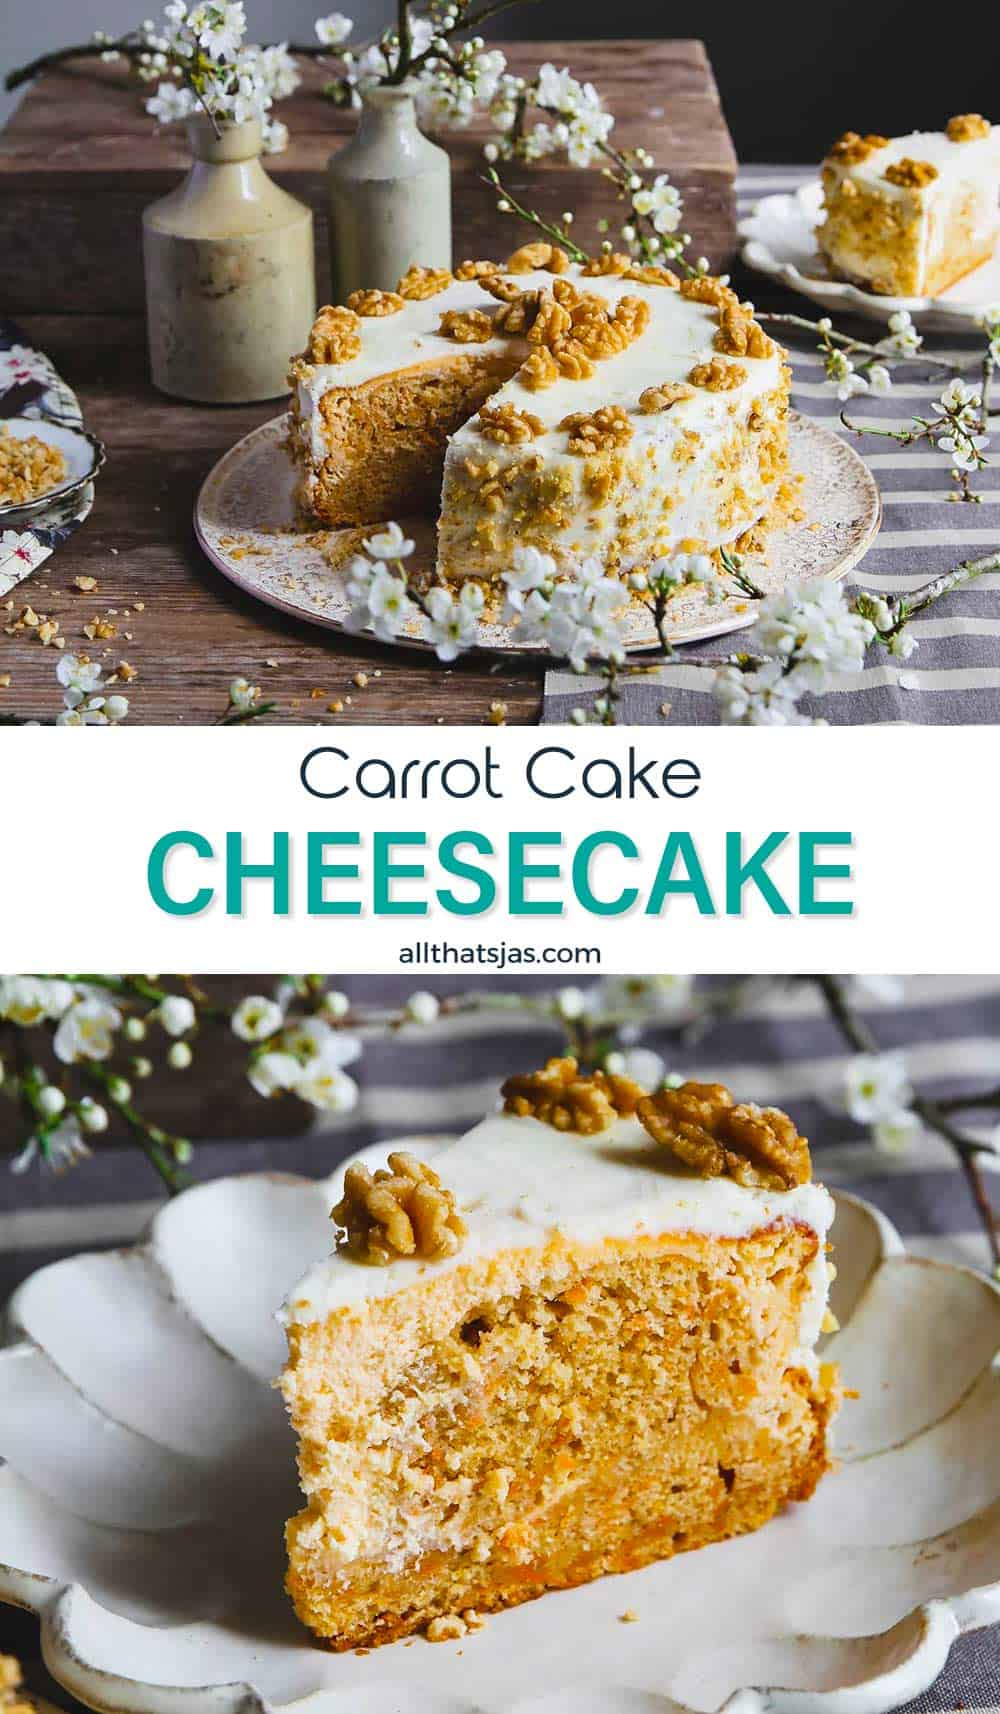 Two phot image with carrot cake cheesecake and a slice with text in the middle.